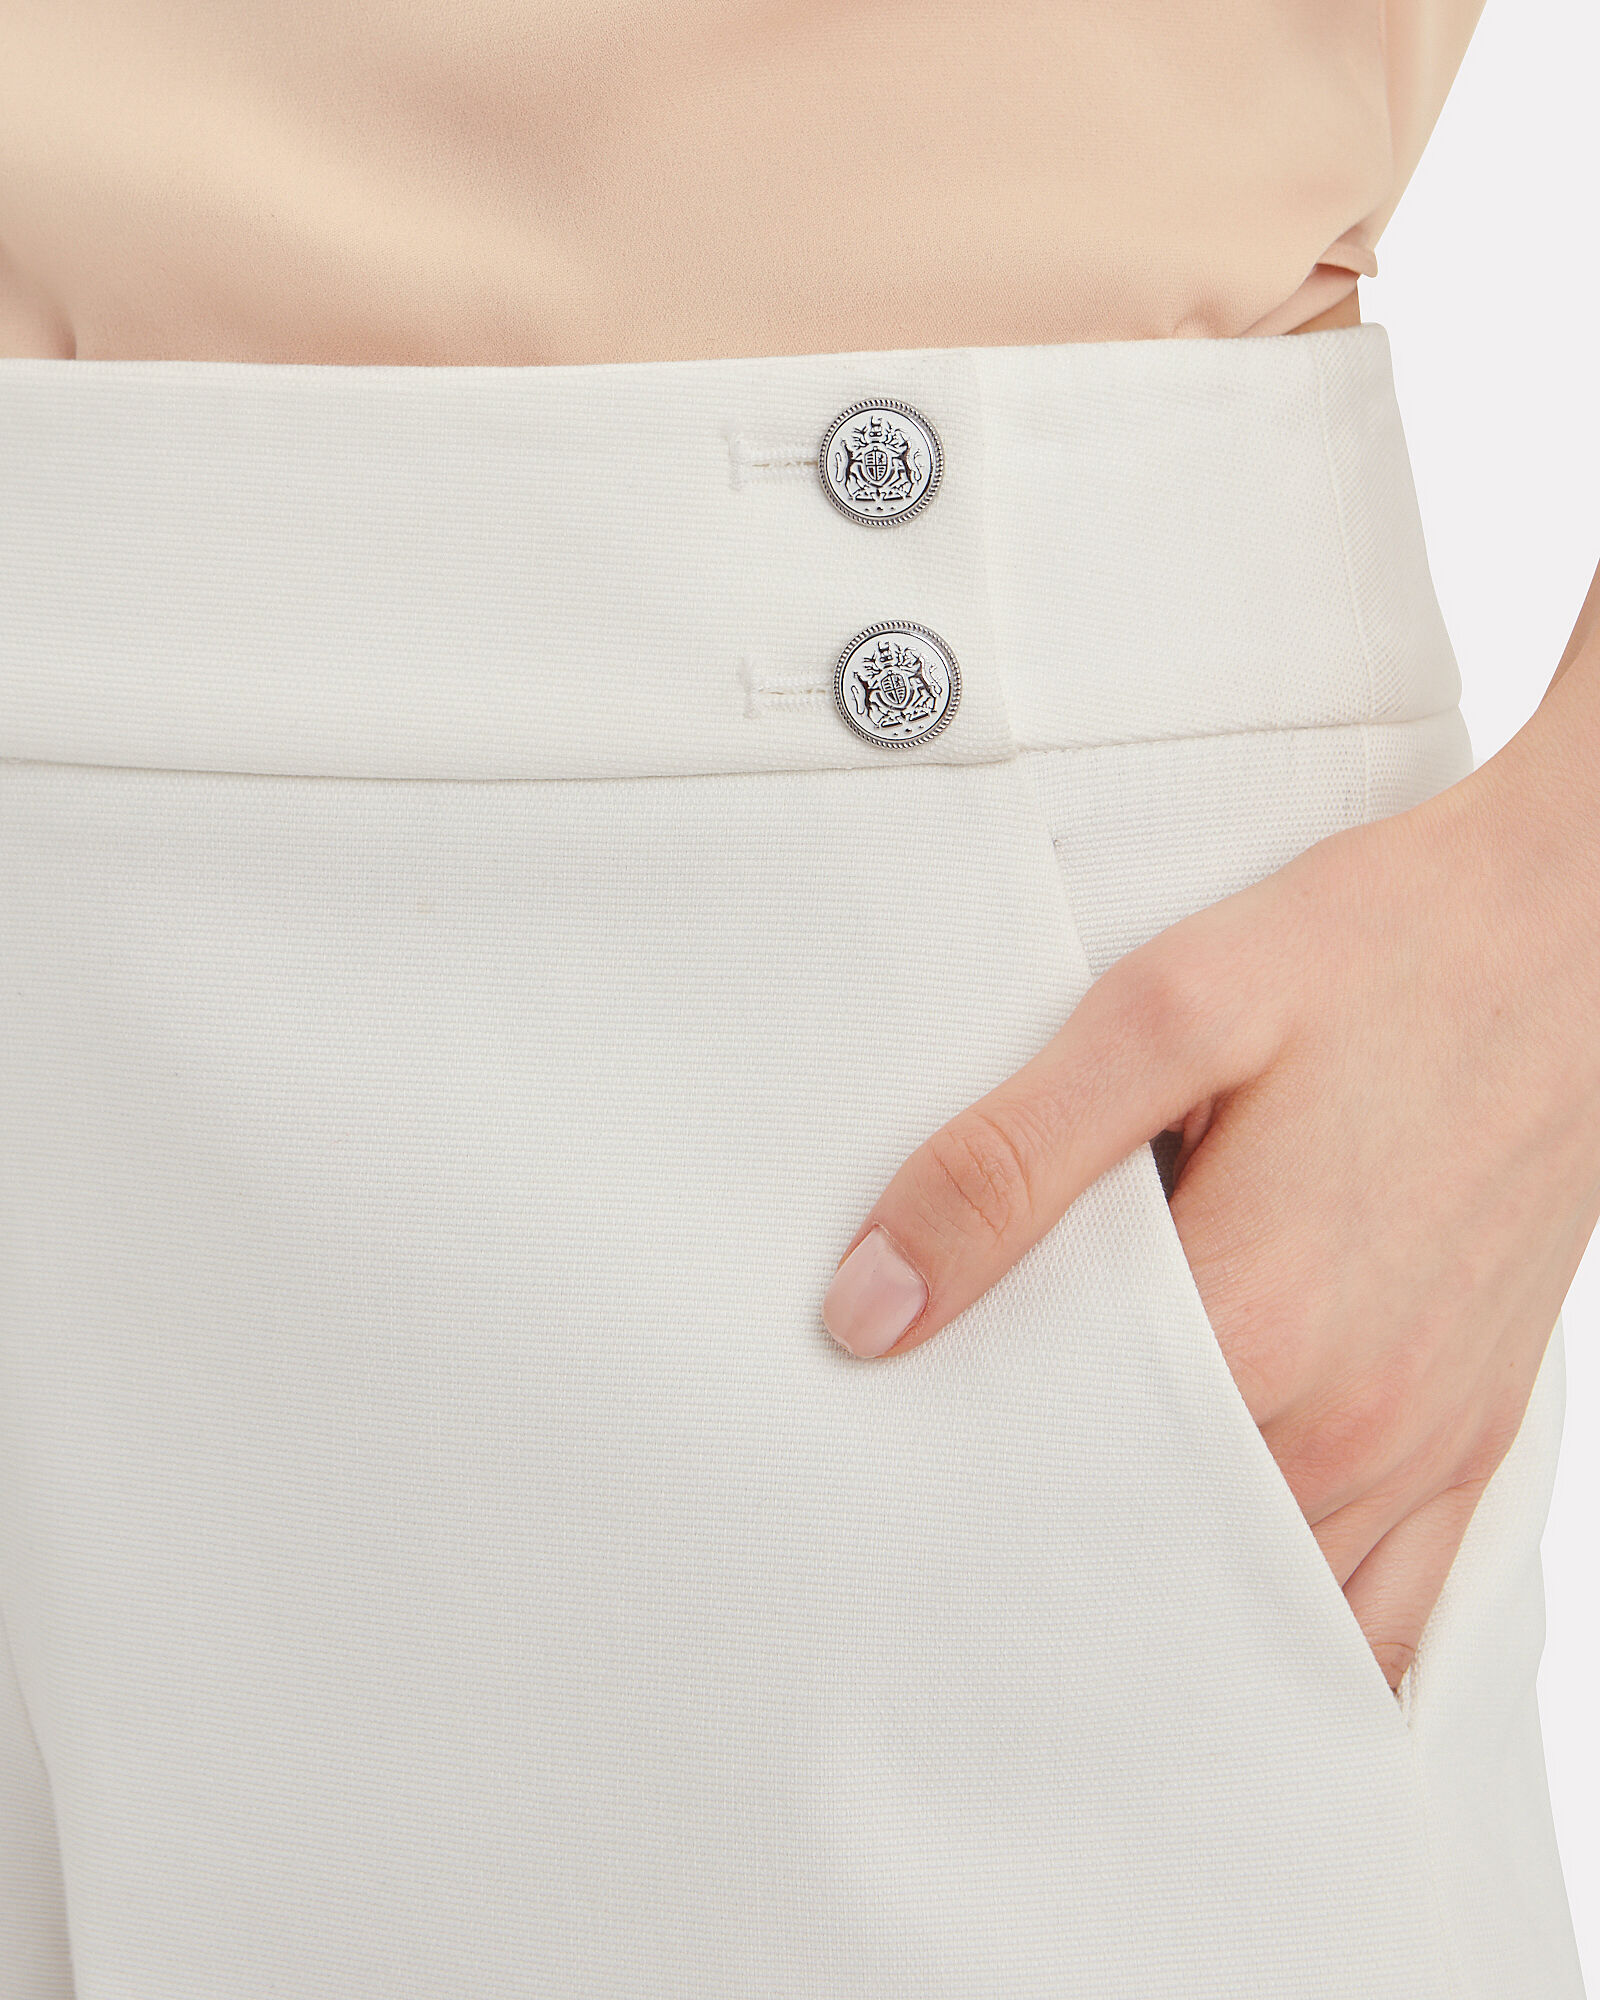 Kimm Tailored Shorts, IVORY, hi-res